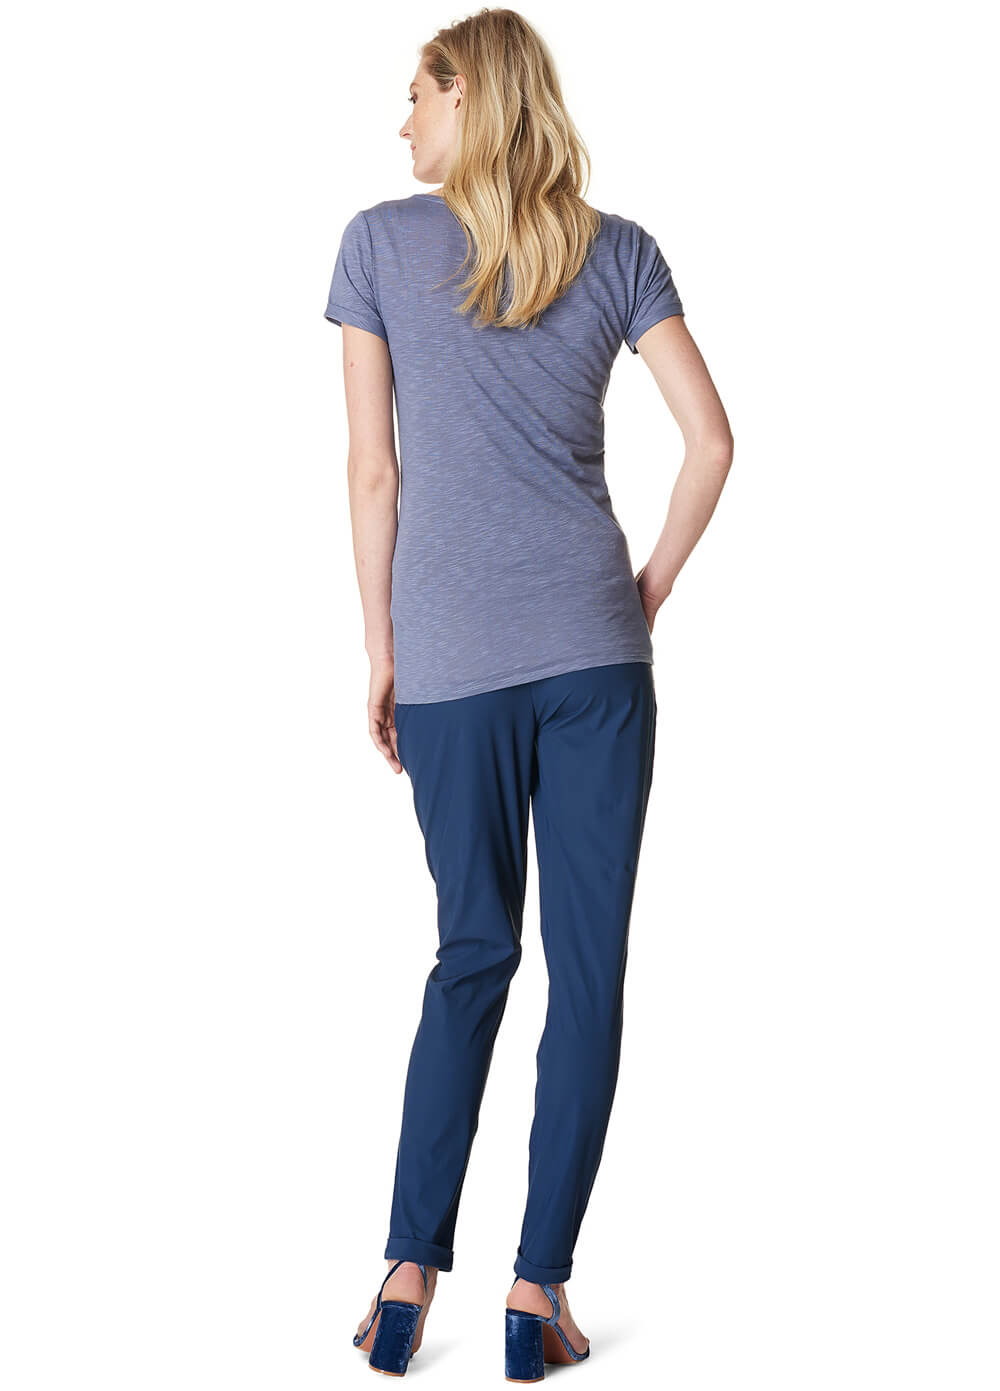 Aranka Navy Maternity Trousers by Noppies